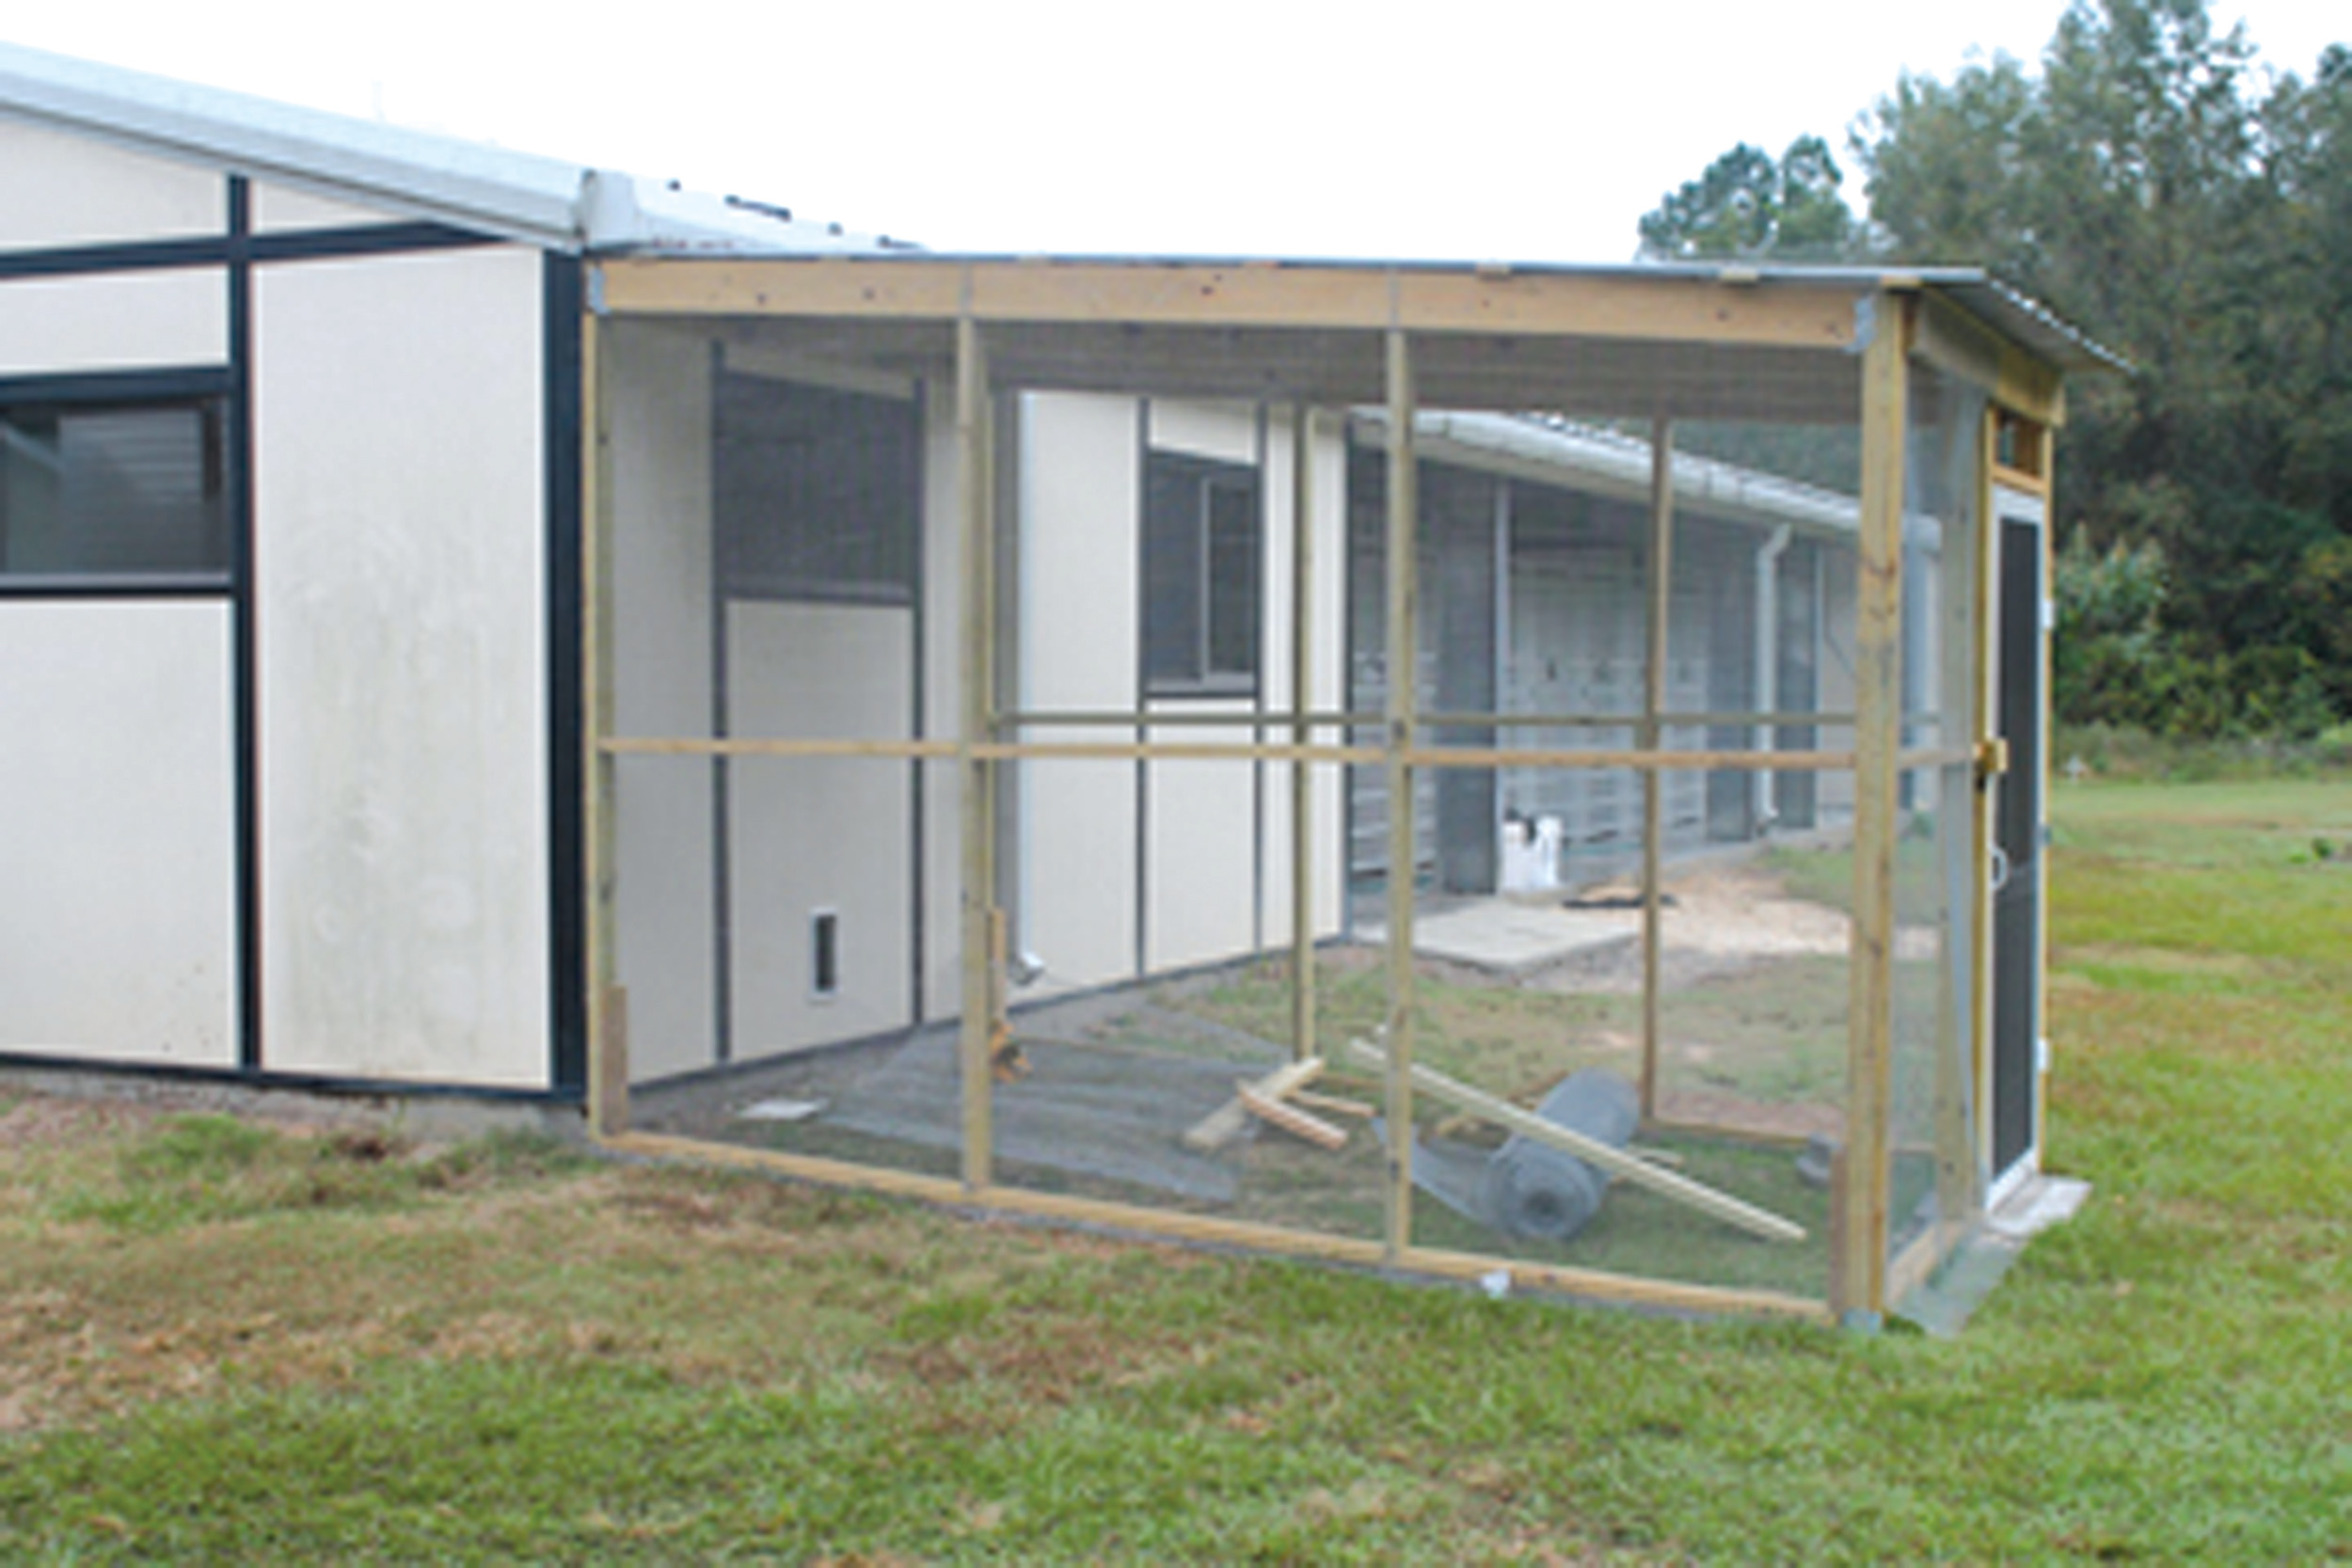 Cats at A Second Chance Animal Shelter will be calling a new building on the grounds home in the very near future.  The building built by volunteers features a screened-in area where the cats can enjoy some time outdoors.